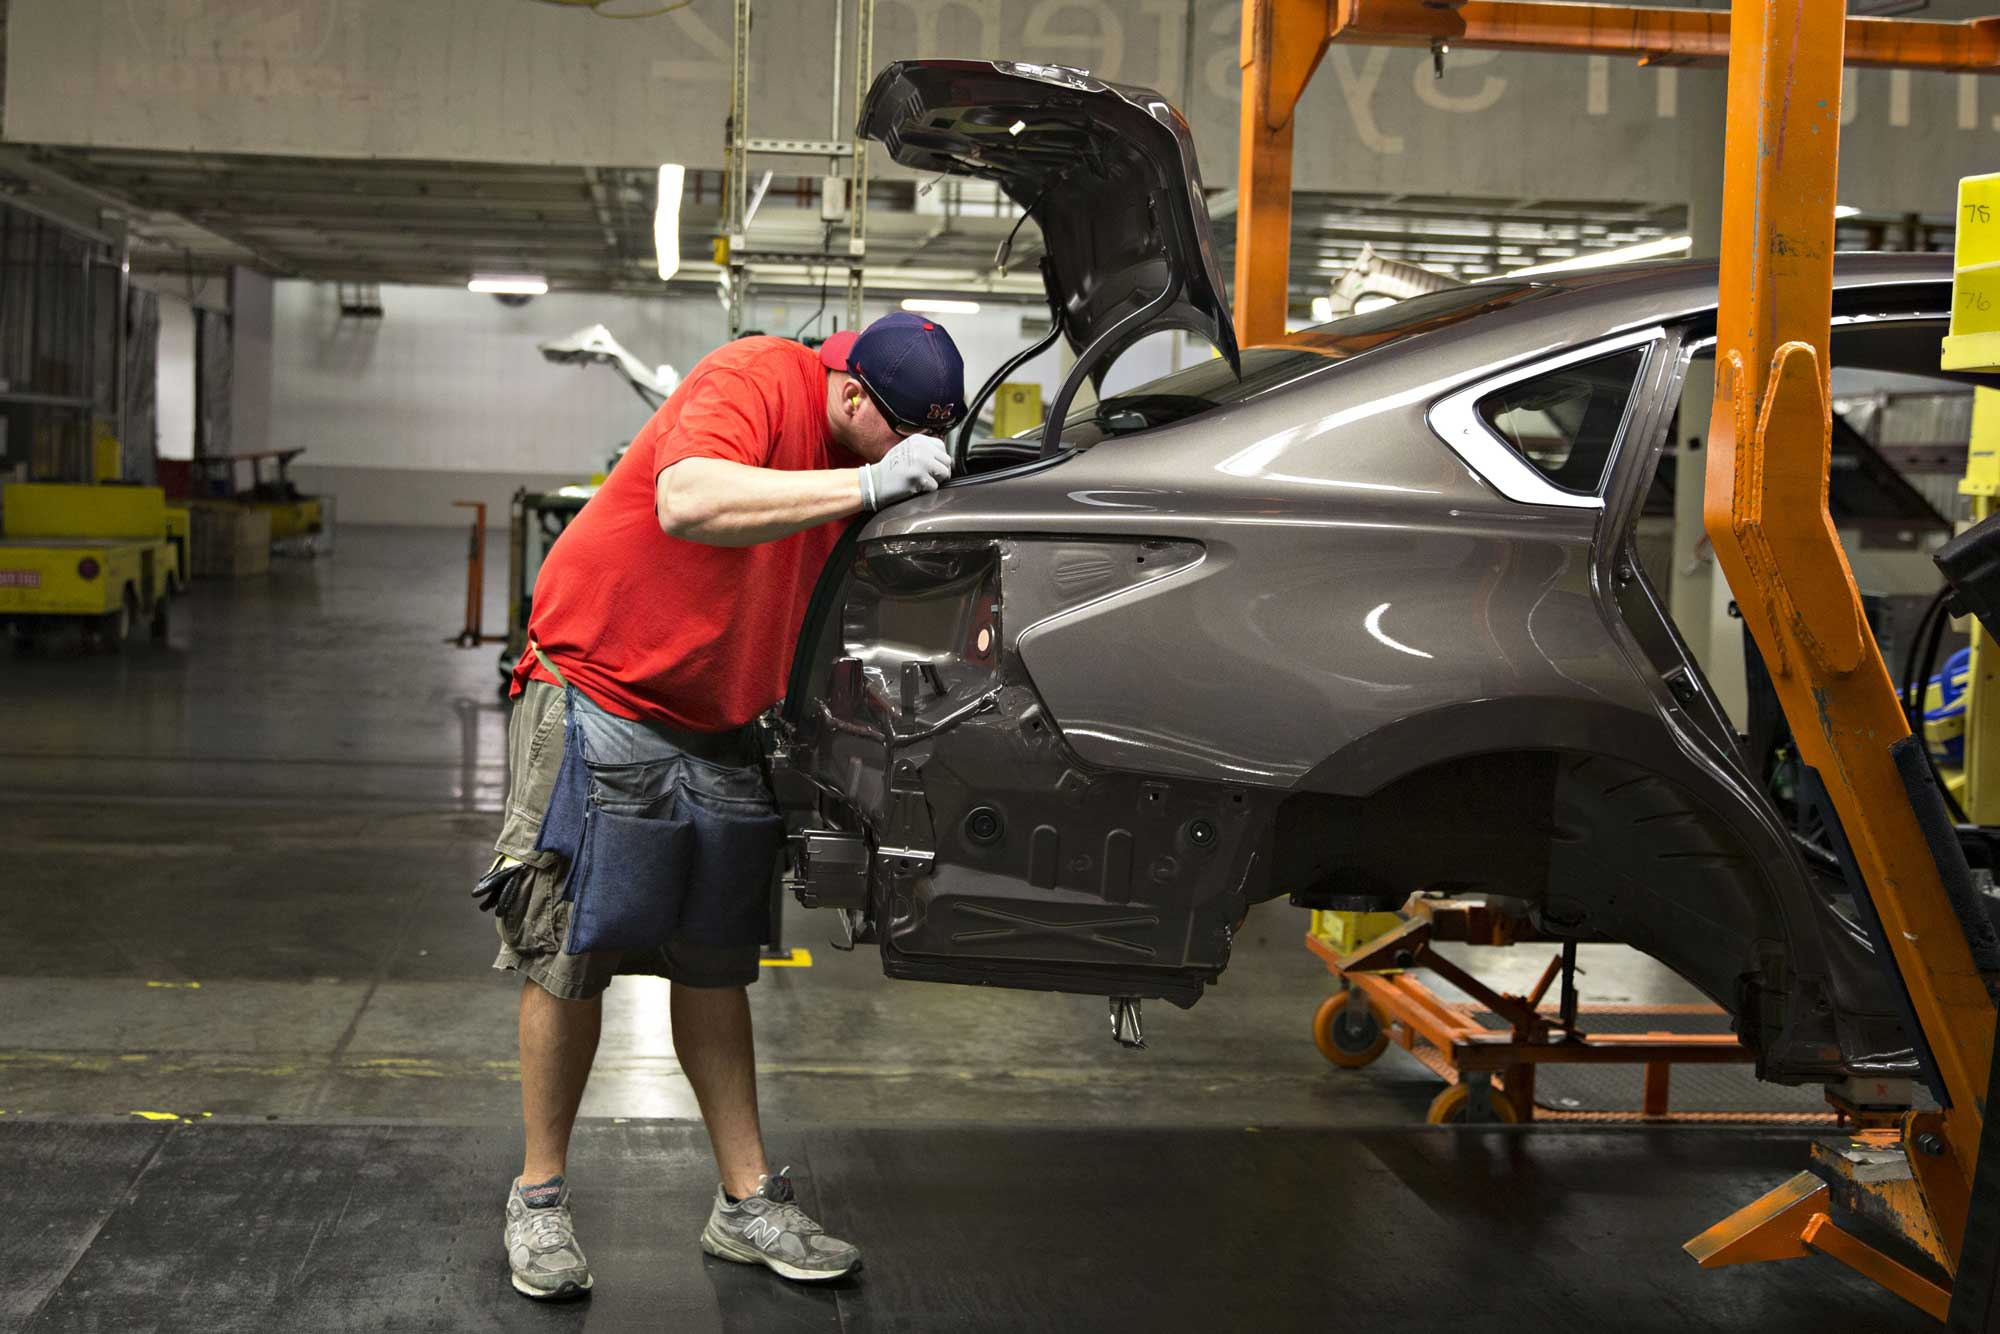 nissan to cut north american output by 20% to shore up us